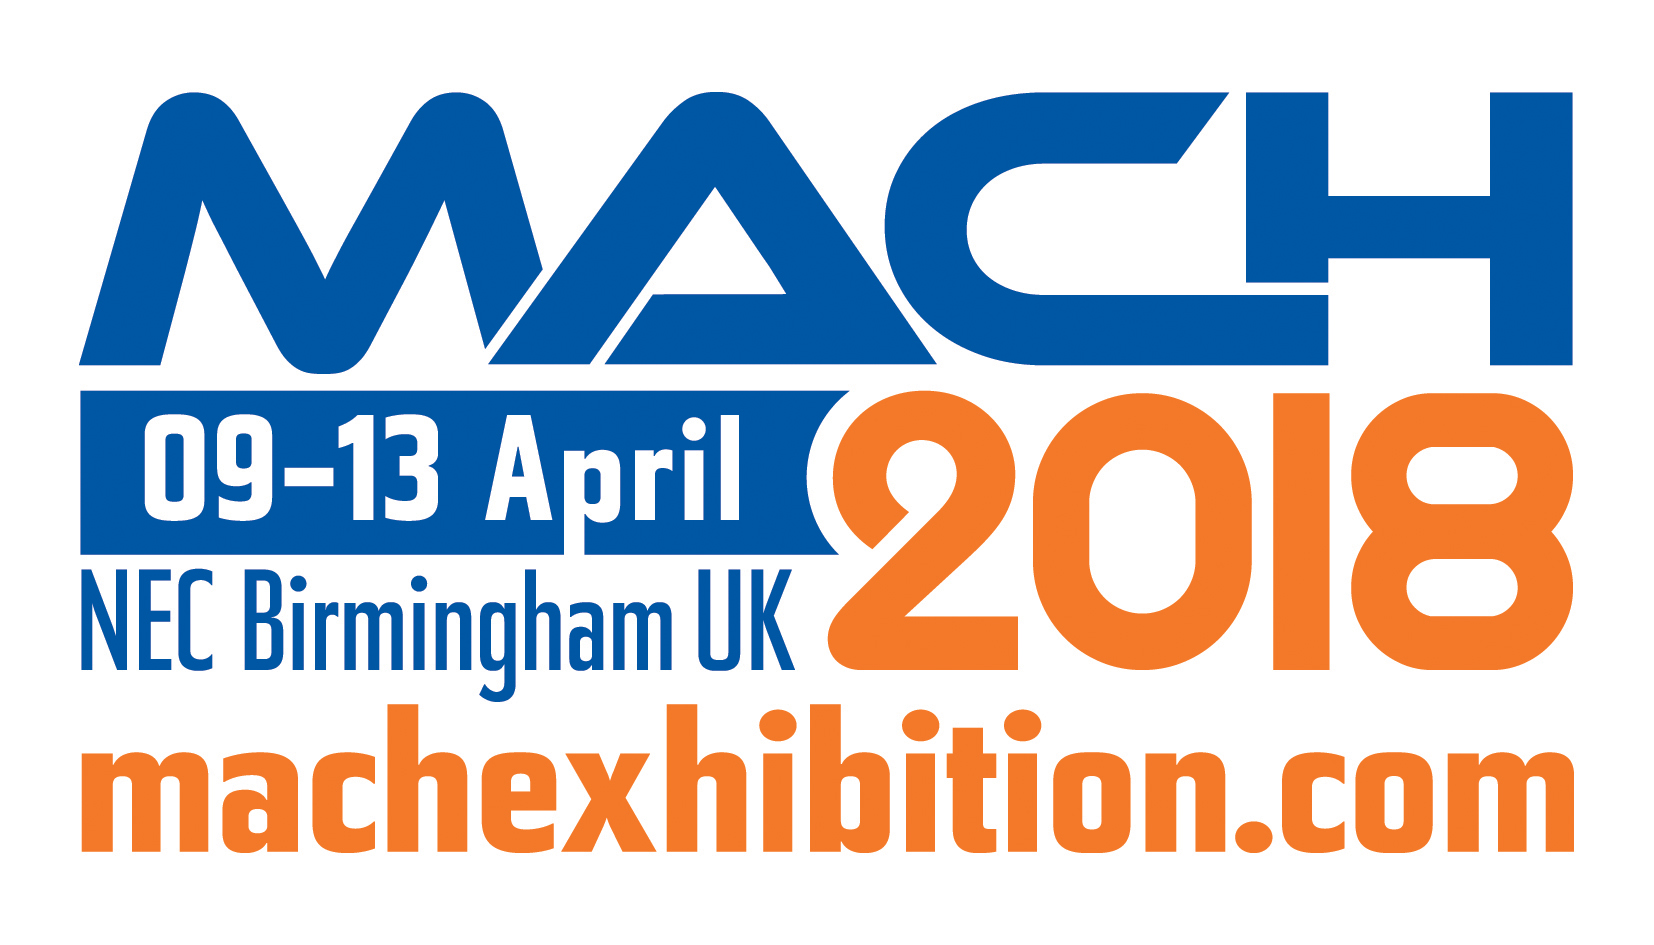 Come and visit us at MACH 2018